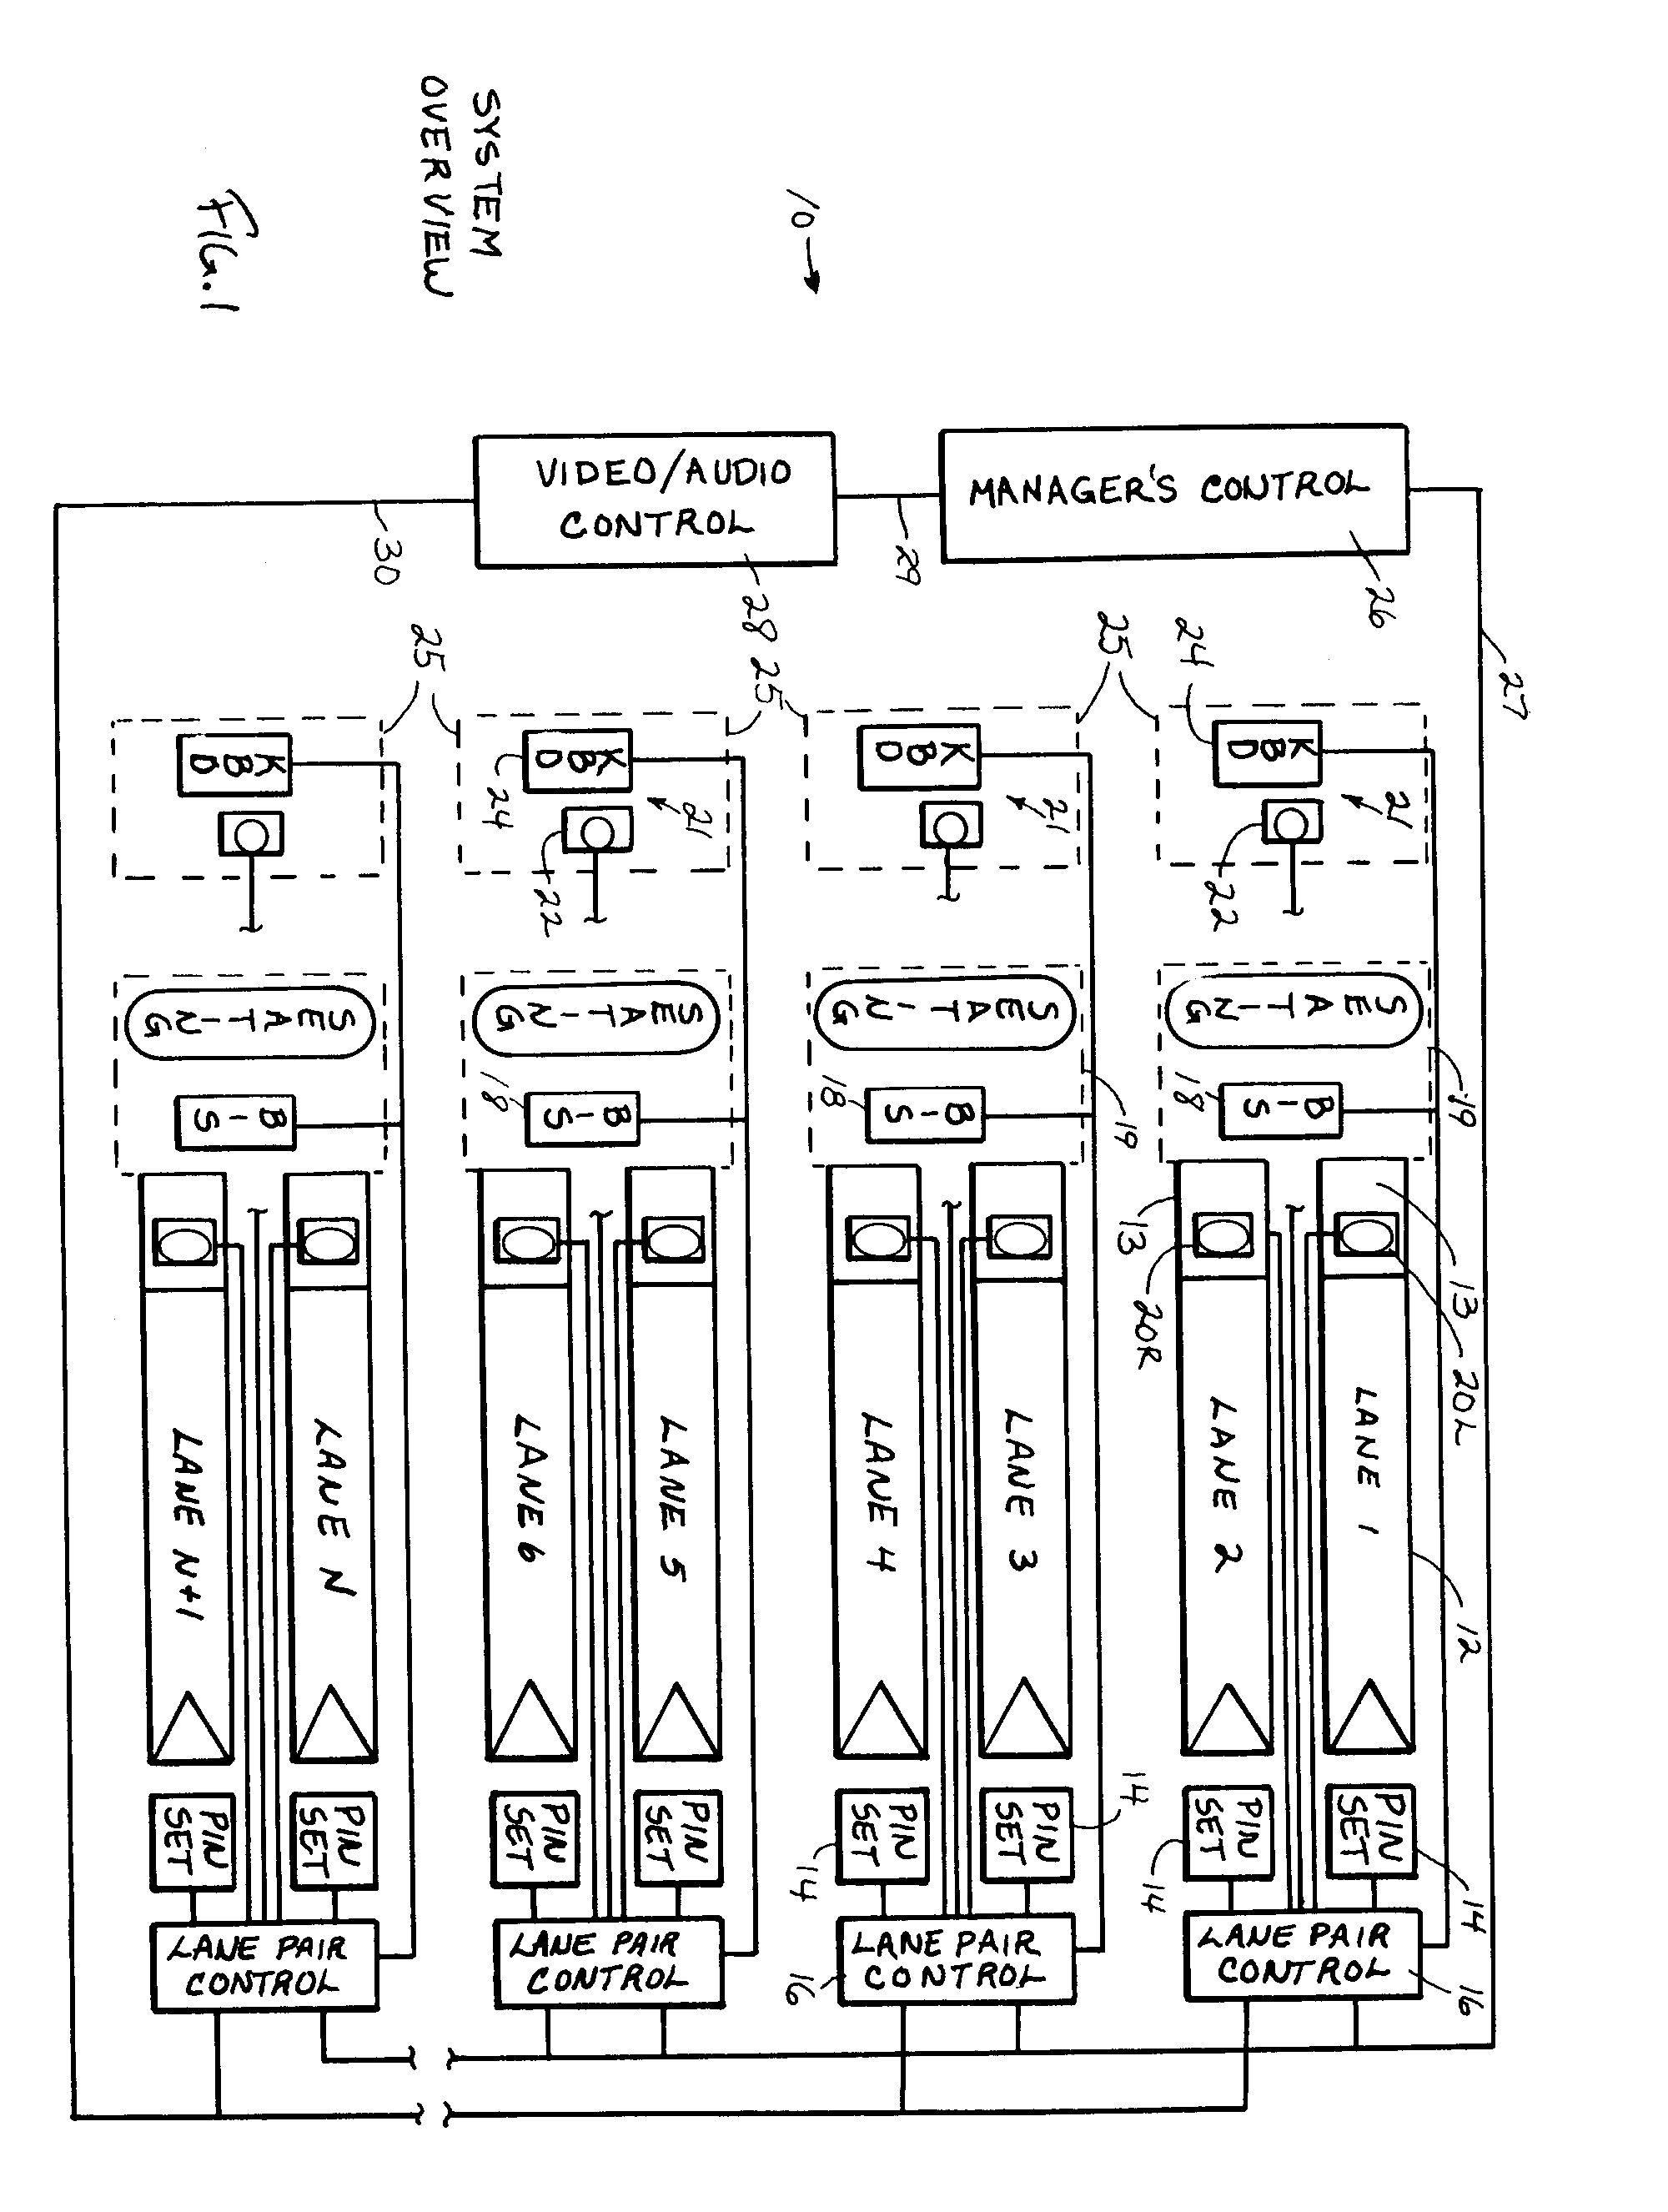 patent ep0558107a2 trajectory display system google patents patent drawing